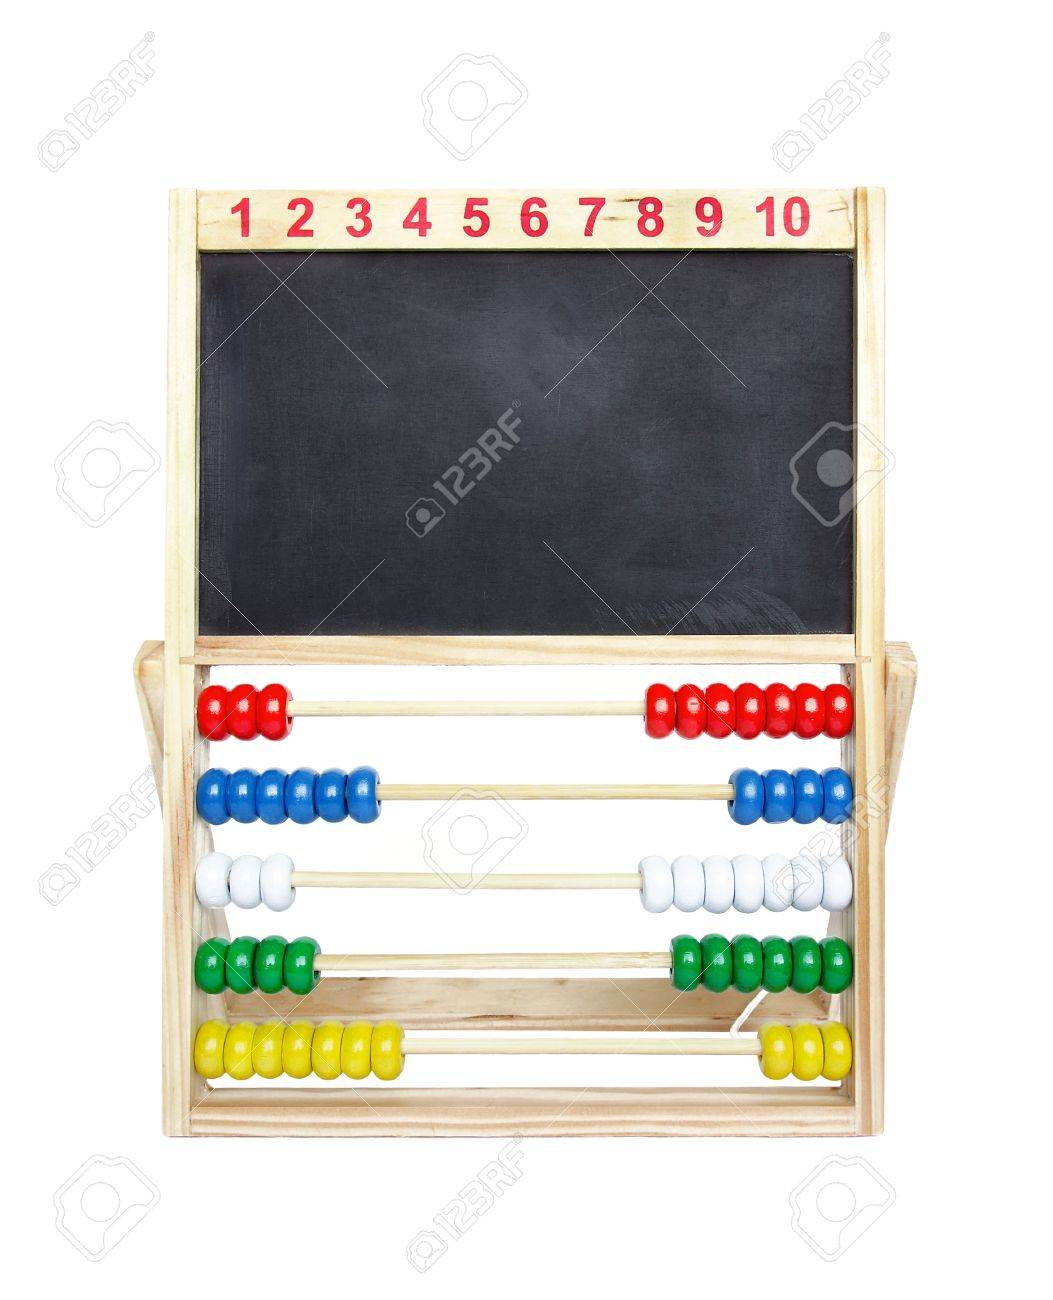 Wooden toy abacus with blank blackboard on a white background. Stock Photo - 10894540